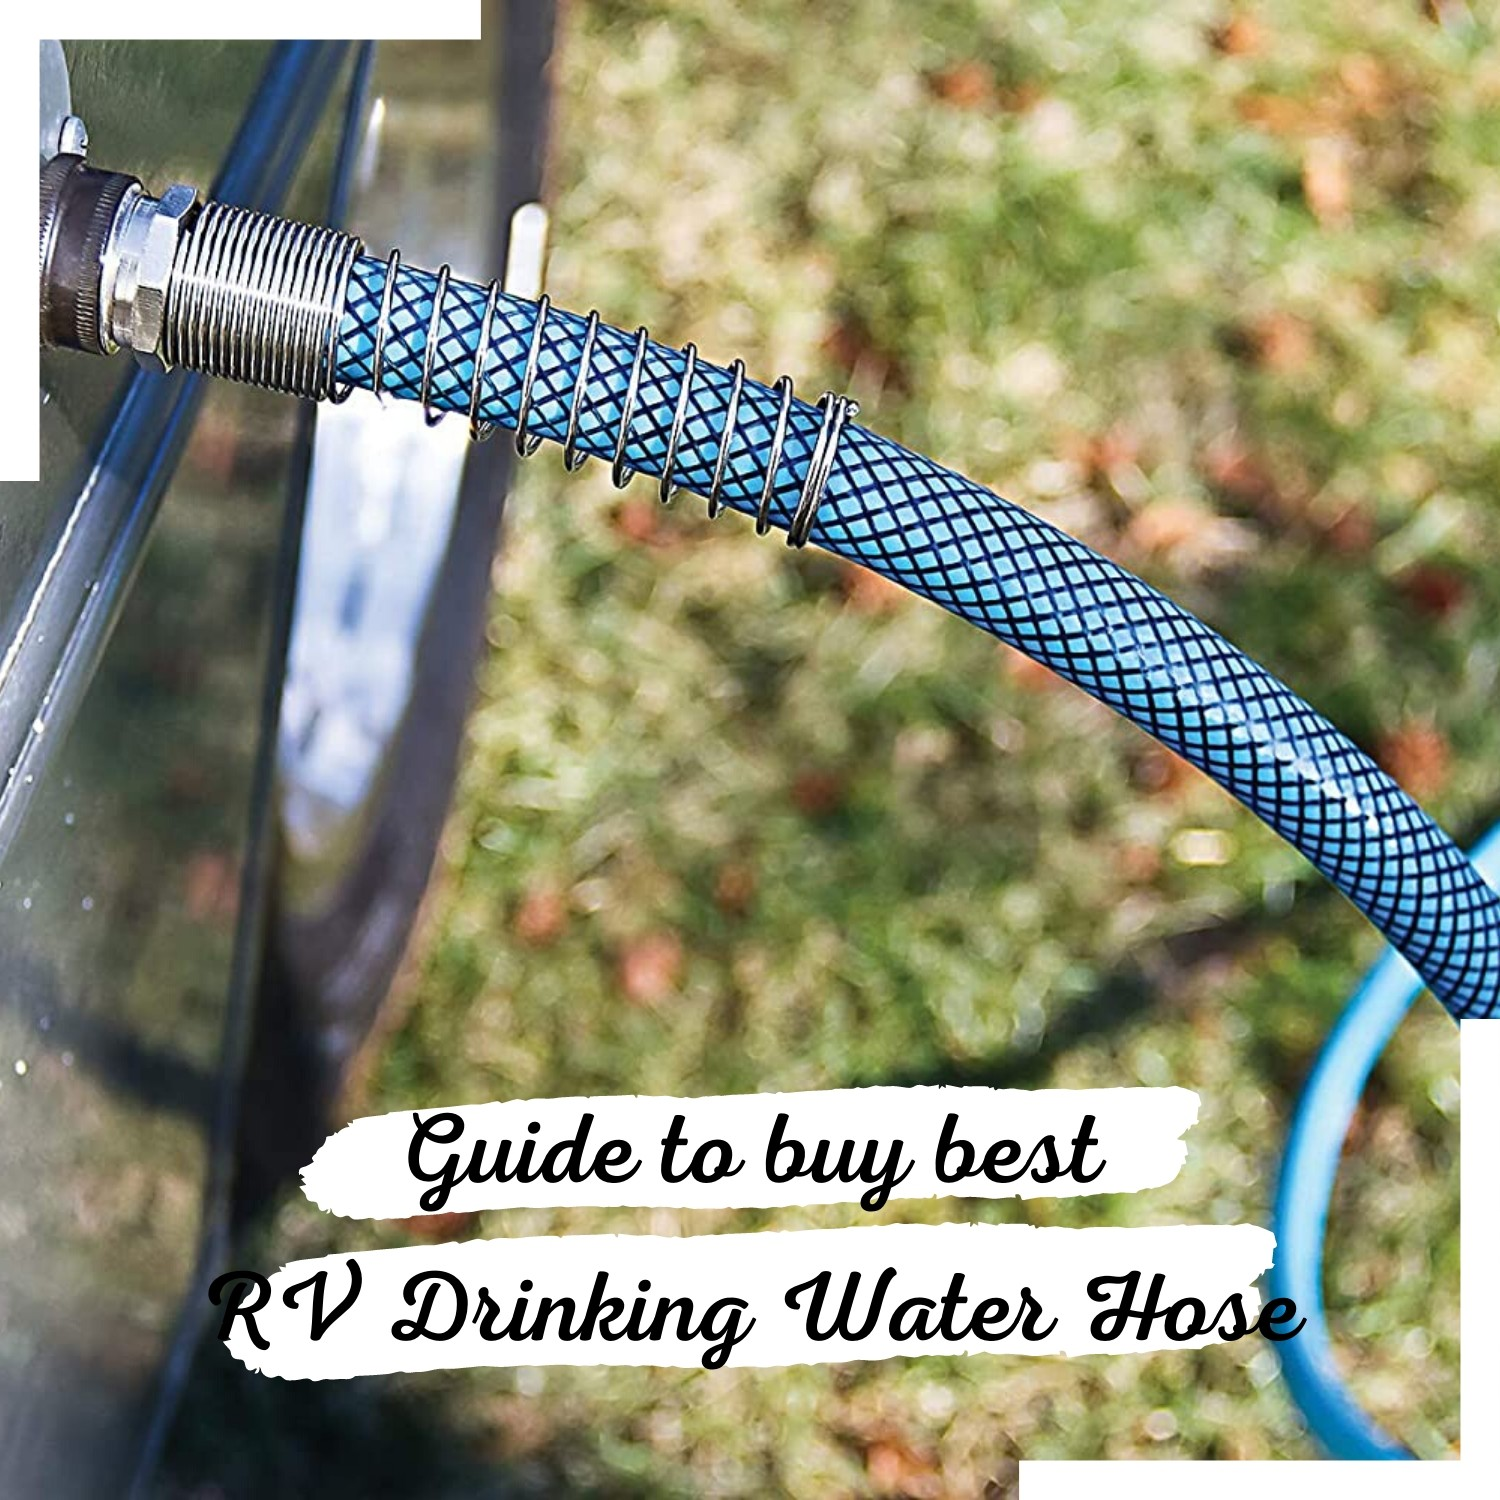 Guide to buy best RV drinking water hose